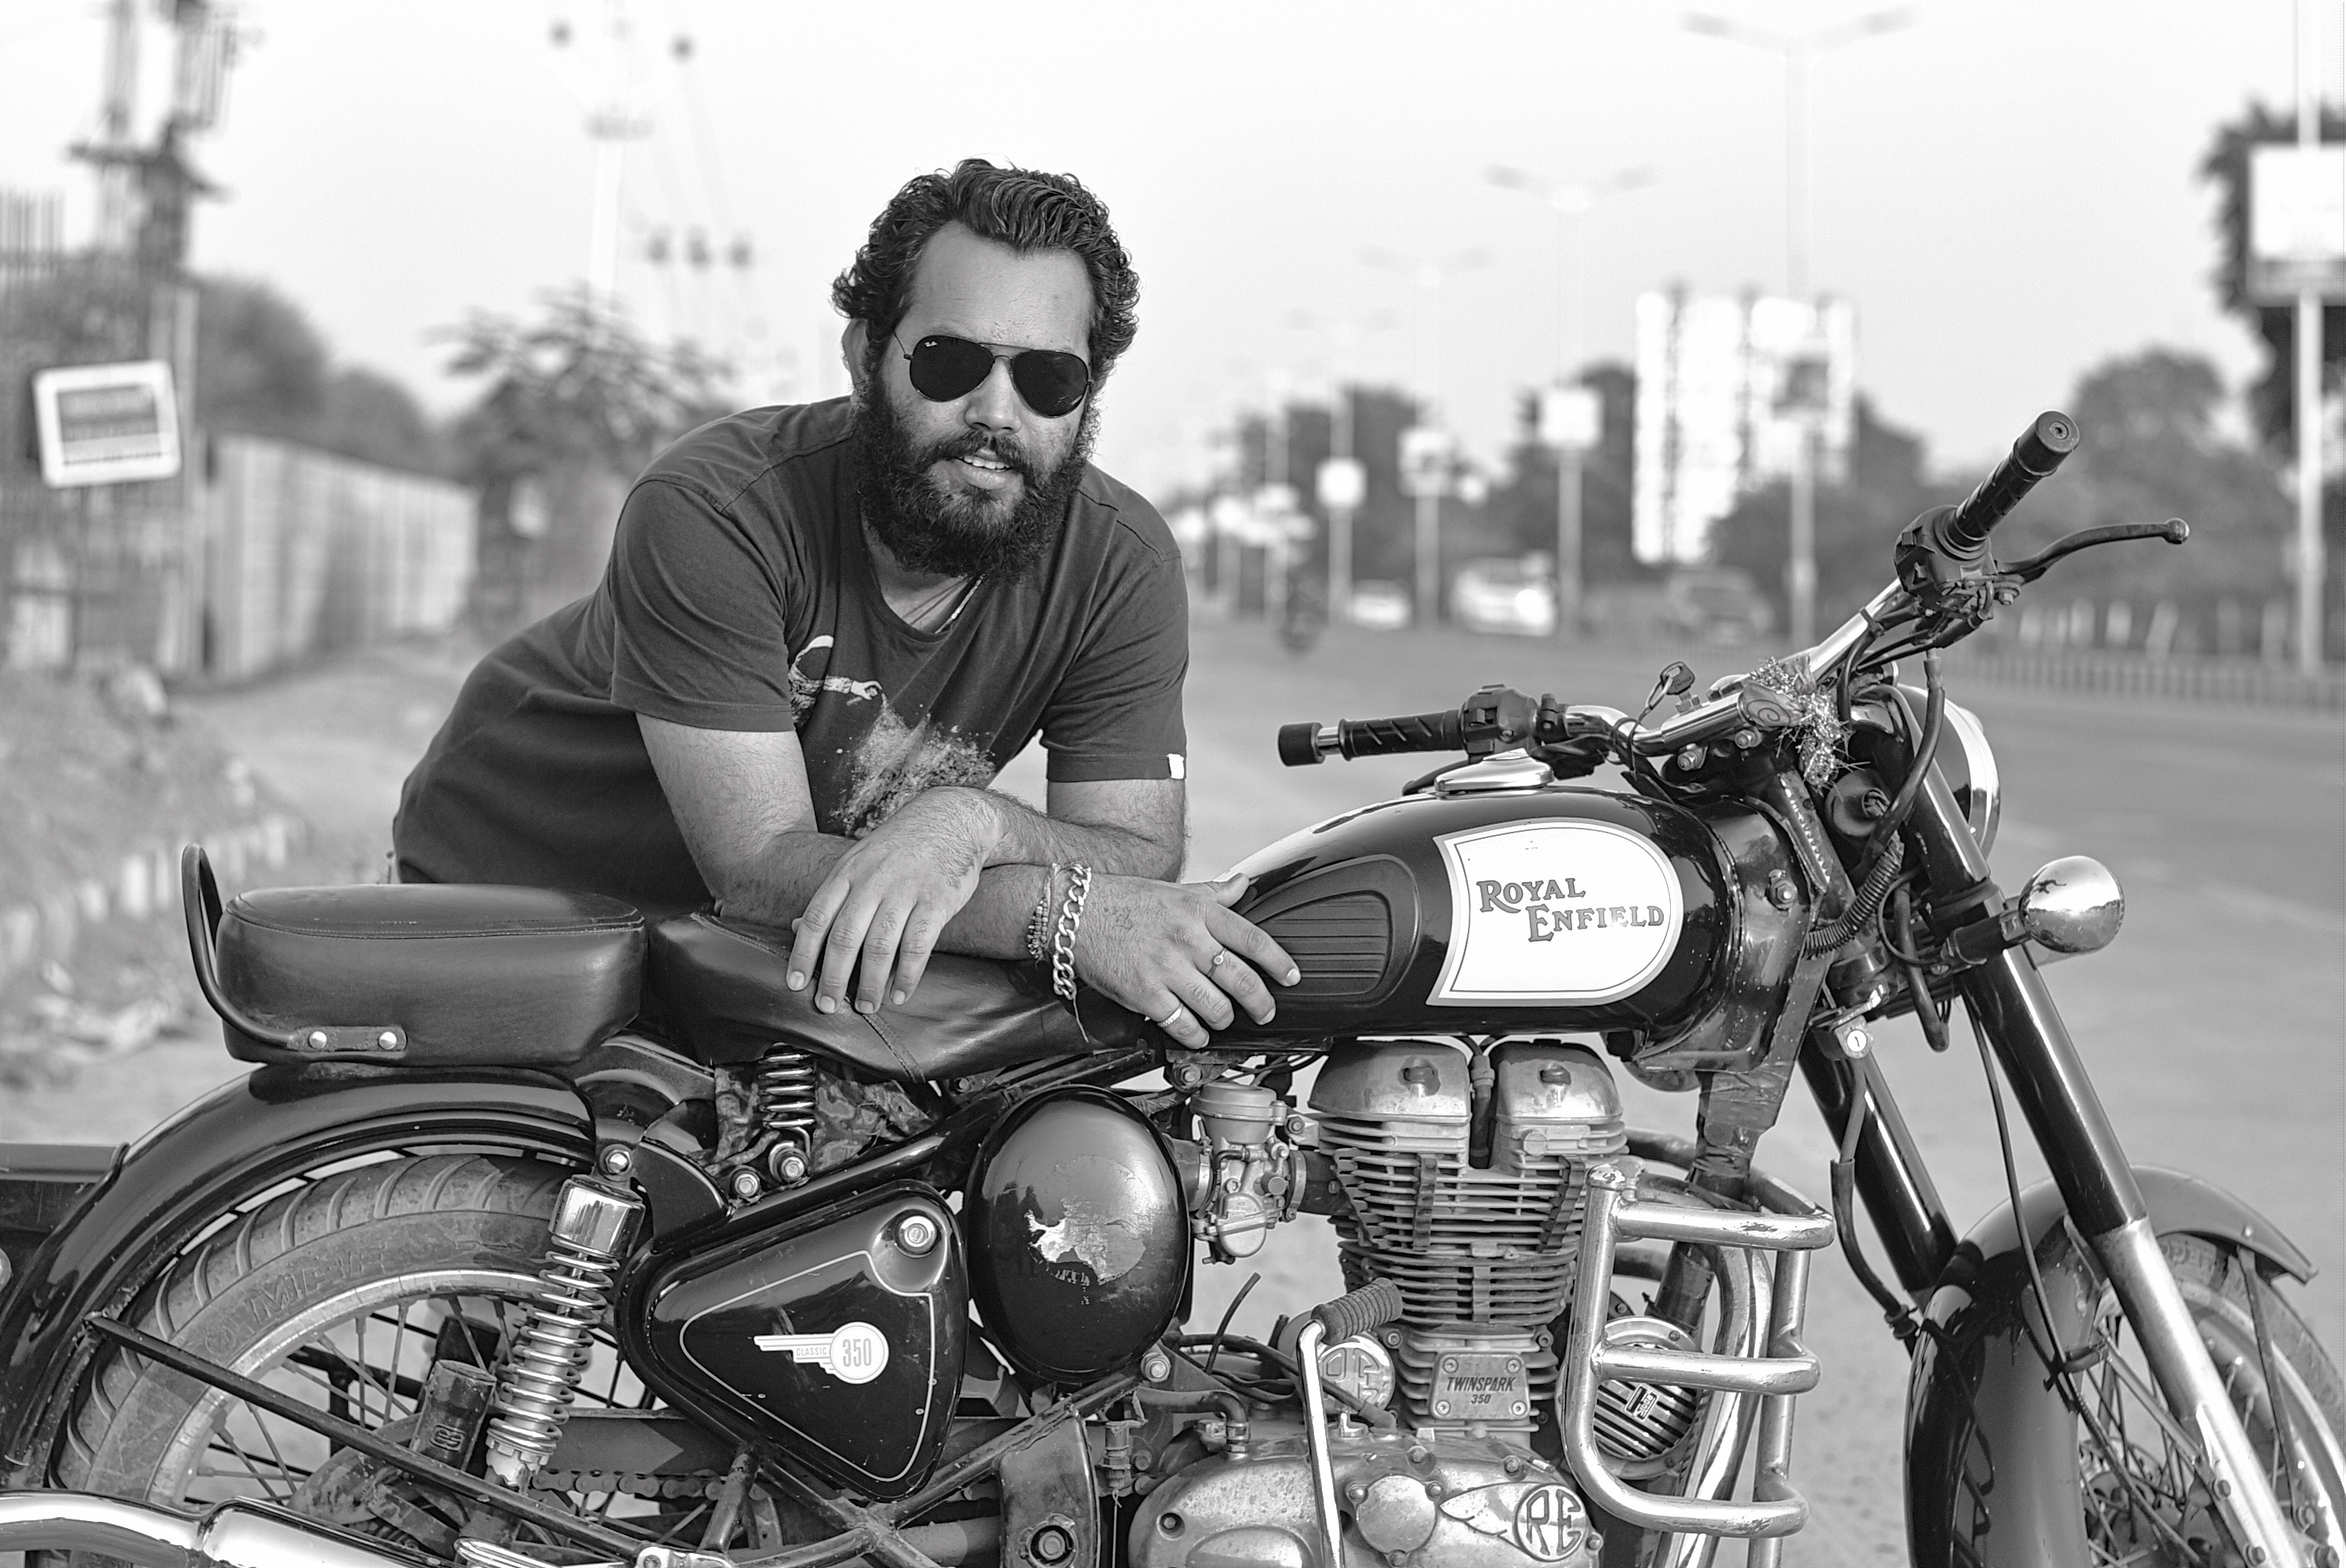 My Motorcycle Goal – Royal Enfield